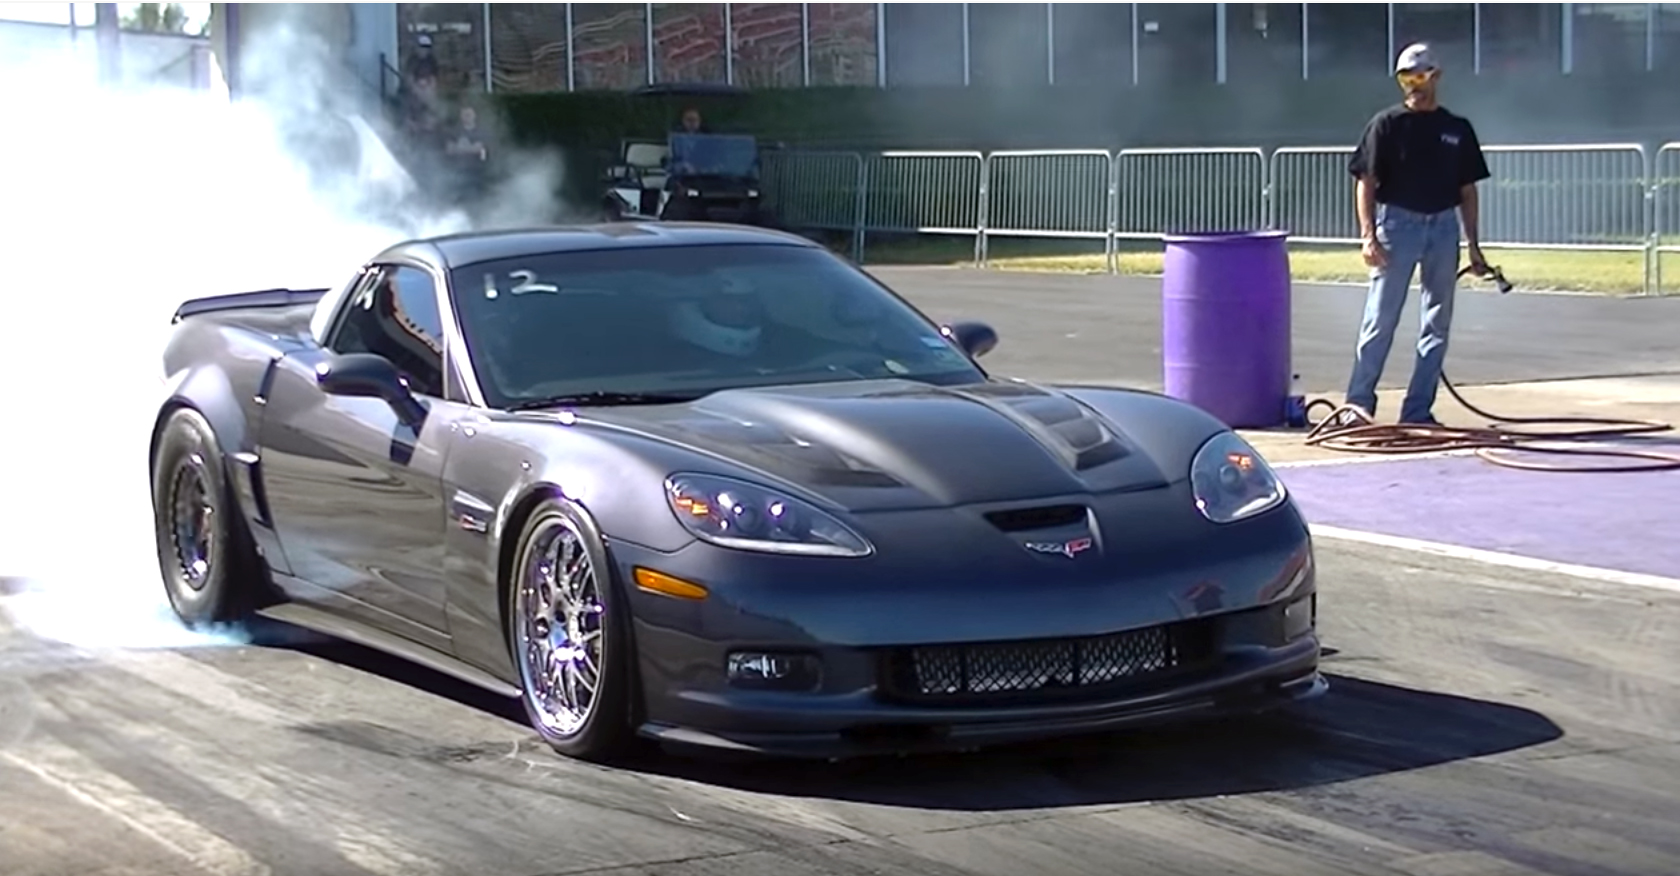 Twin Turbo Corvette Z06 Demolishes Royal Purple Raceway